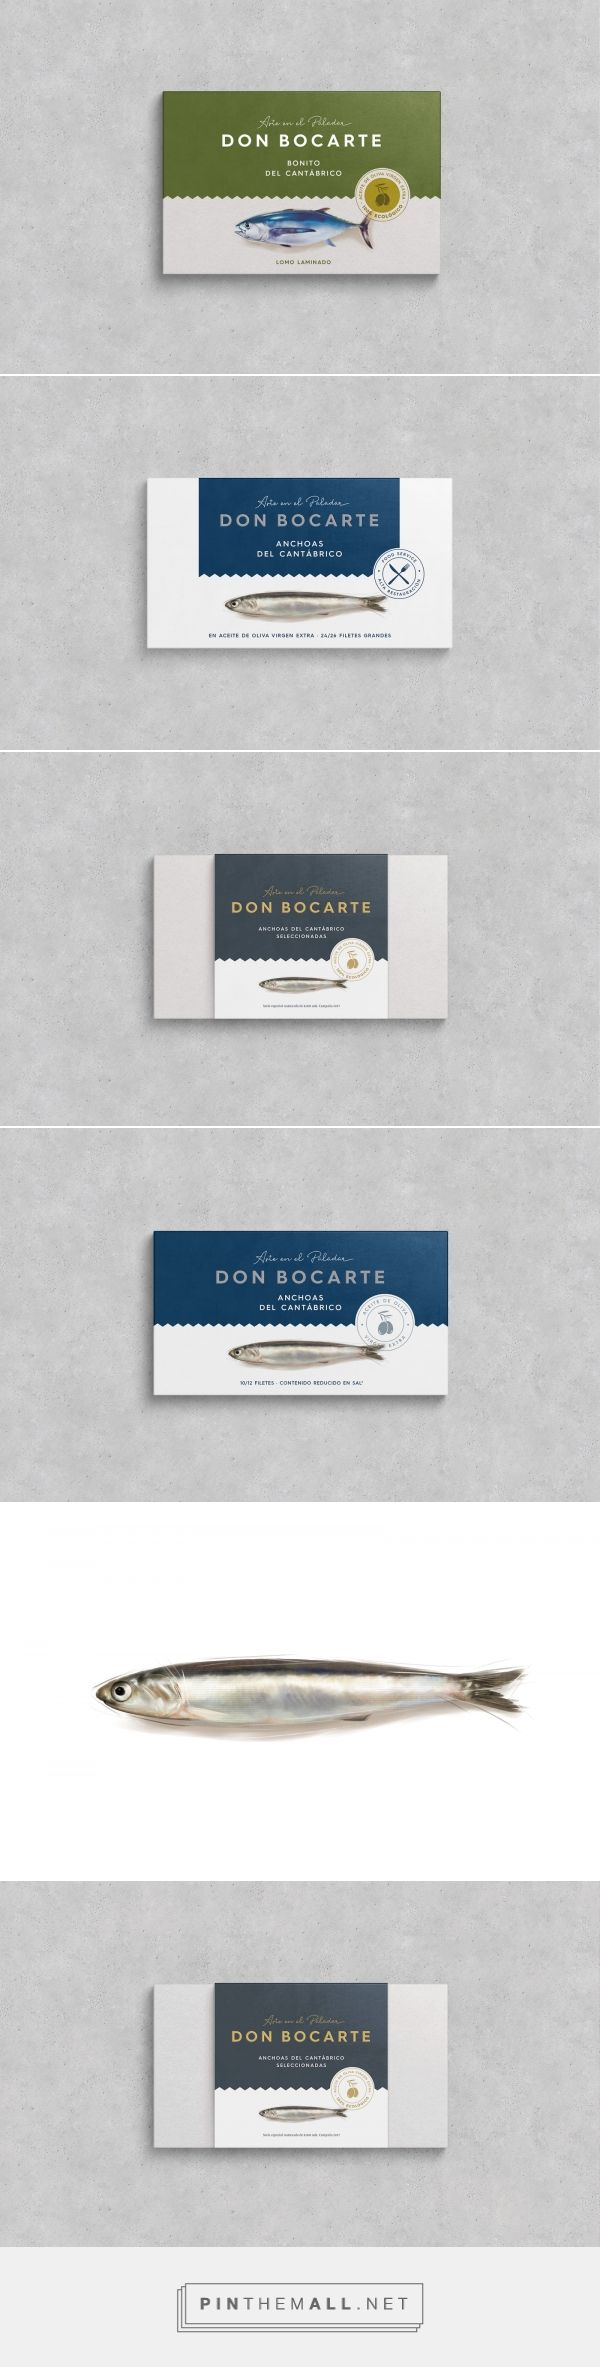 Bon Bocarte, Art for your palate - canned fish packaging design by Supperstudio - https://www.packagingoftheworld.com/2018/04/bon-bocarte-art-for-your-palate.html